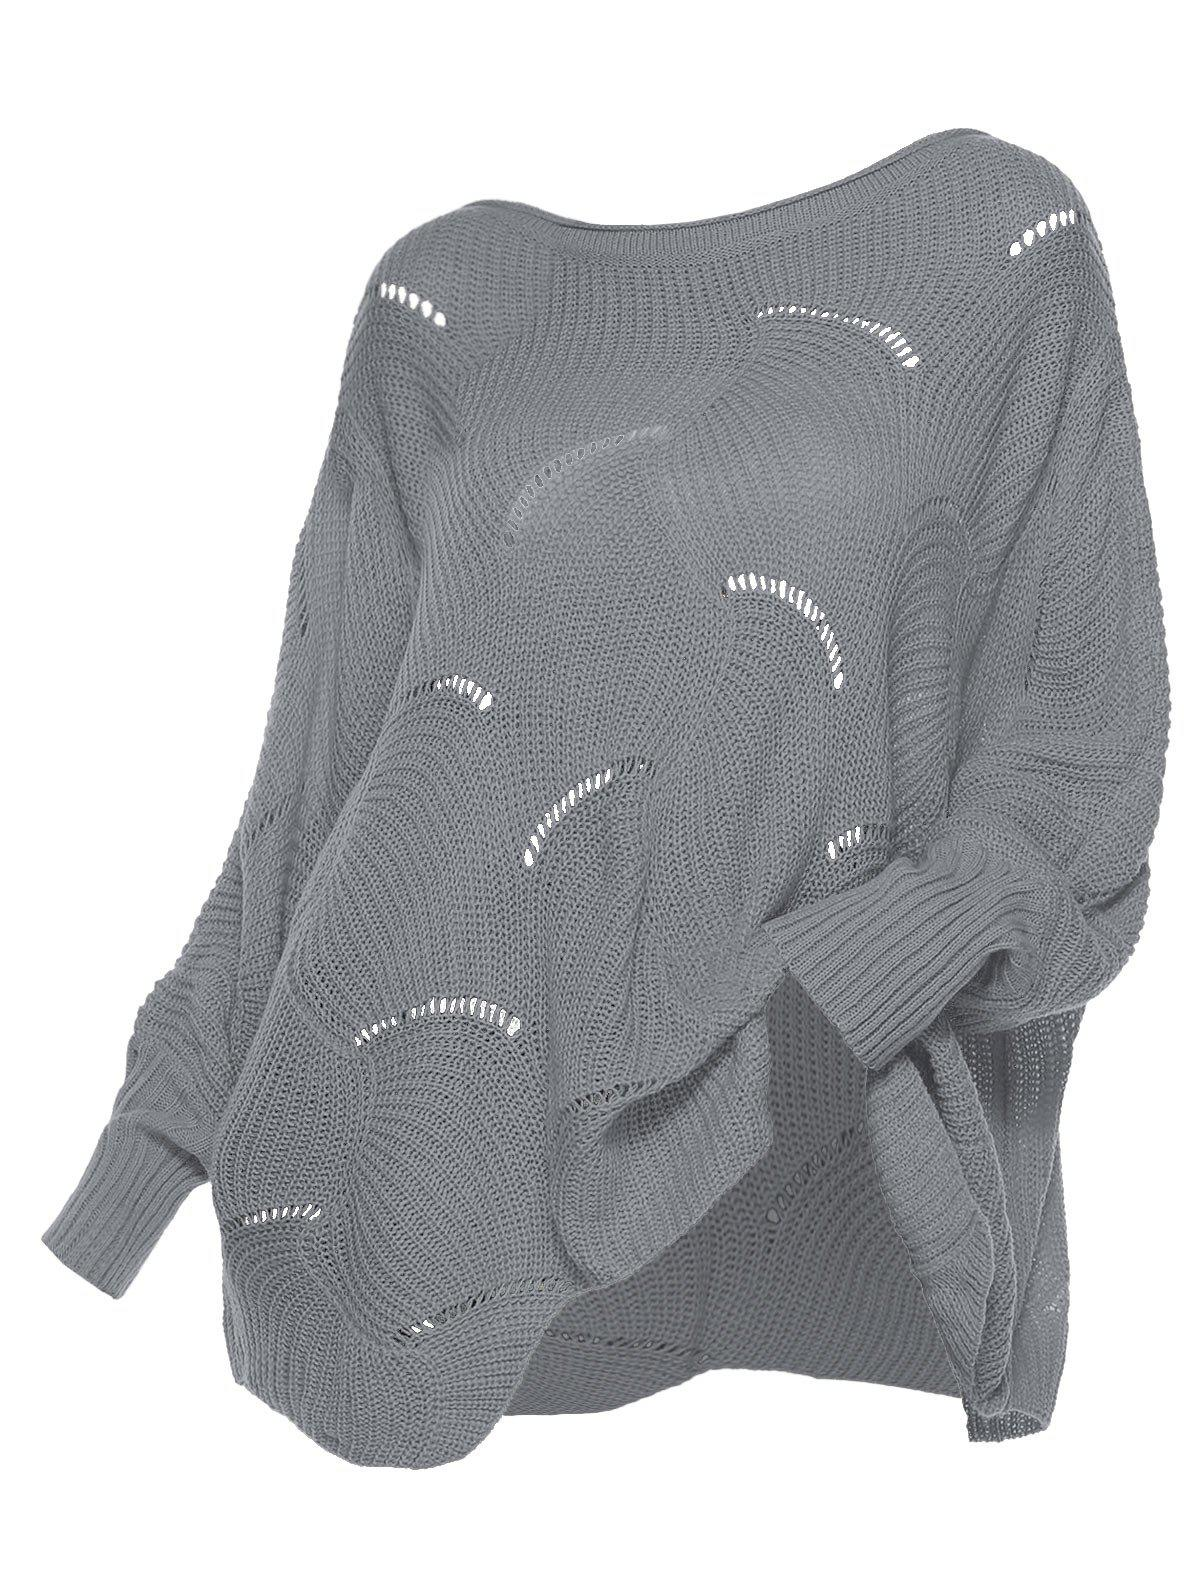 Pointelle Knit Scalloped Hem Pullover Plus Size Sweater - GRAY M